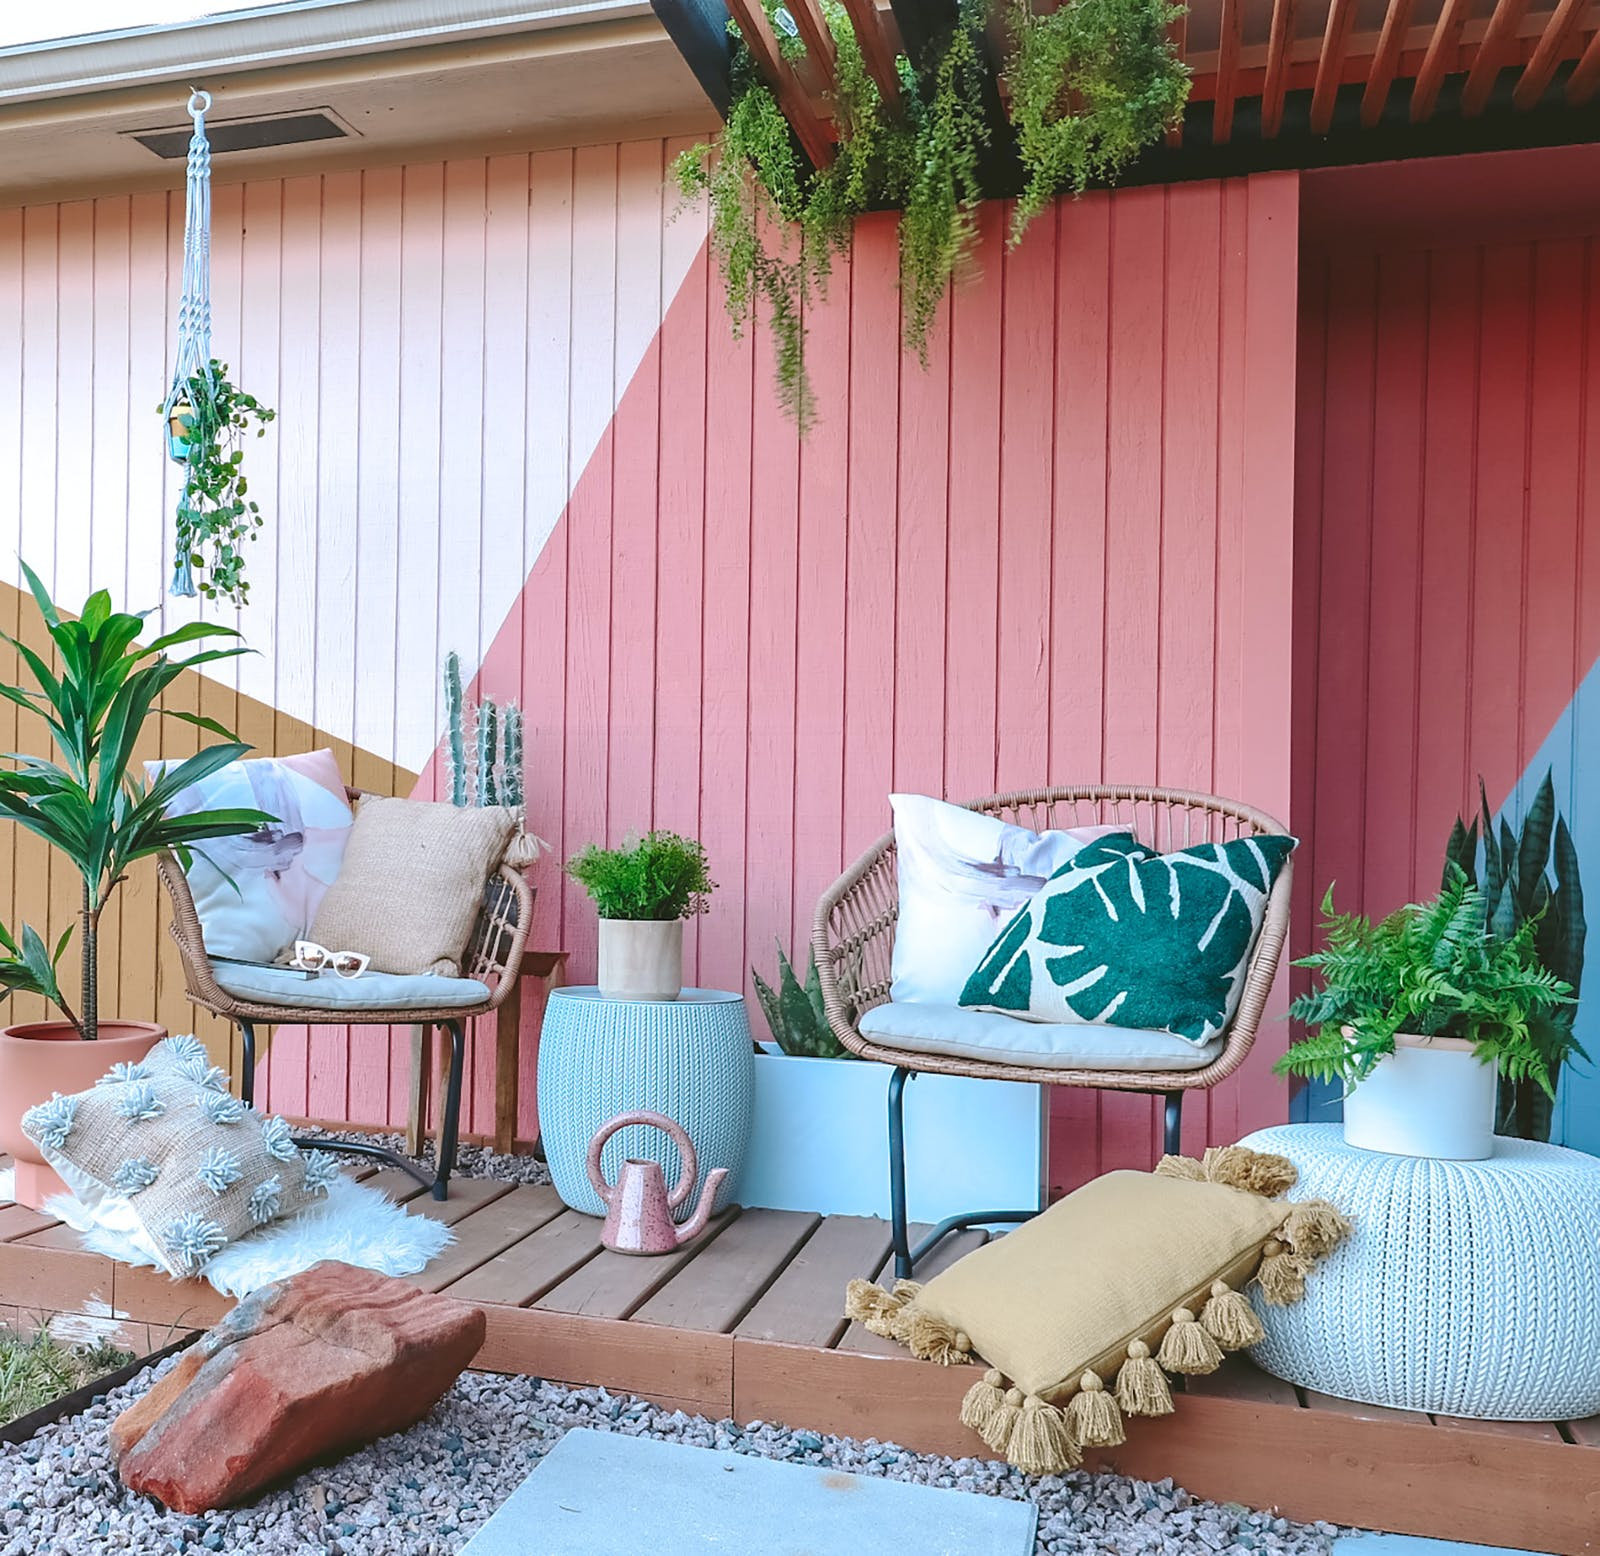 Image of a bohemian inspired backyard with wooden panelling and large cushions